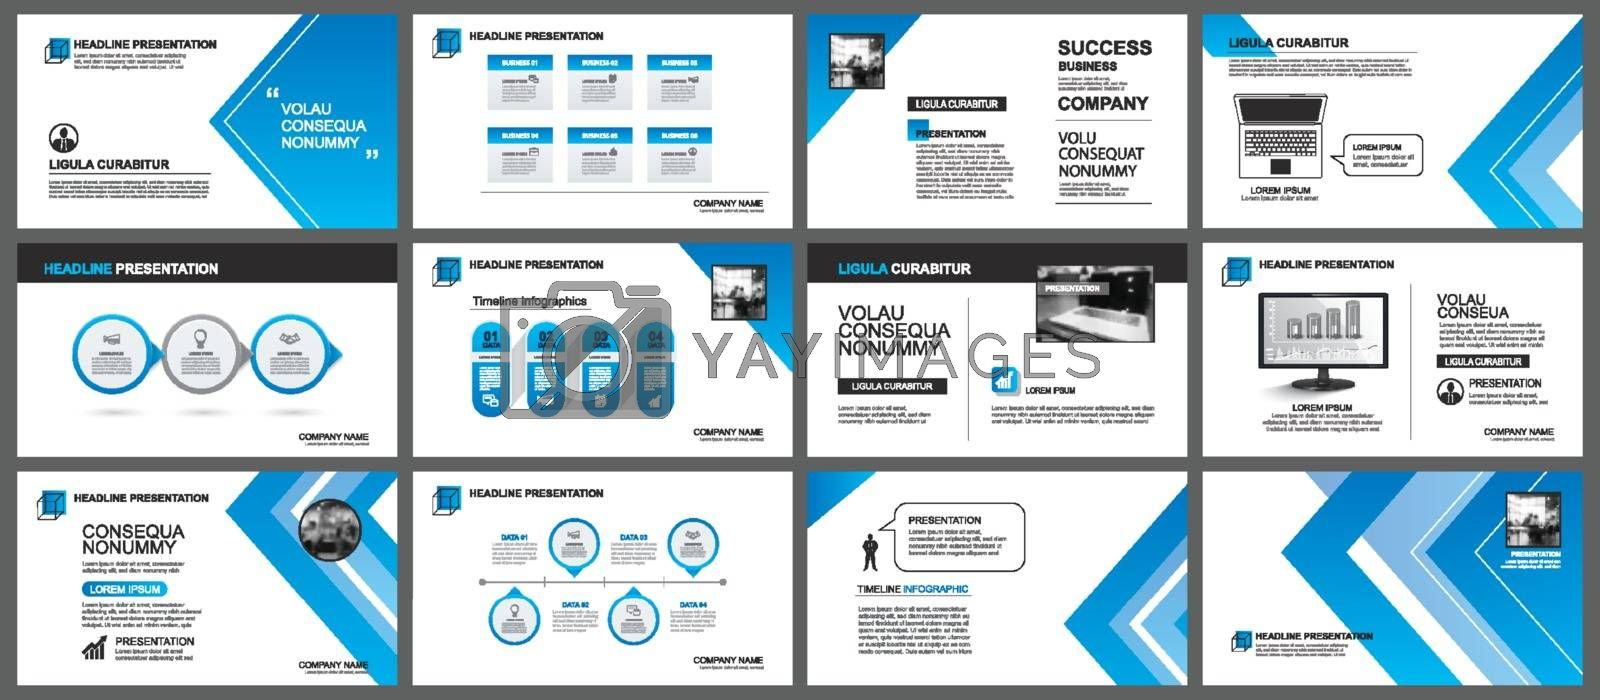 Presentation and slide layout background. Design blue gradient arrow template. Use for business annual report, flyer, marketing, leaflet, advertising, brochure, modern style.